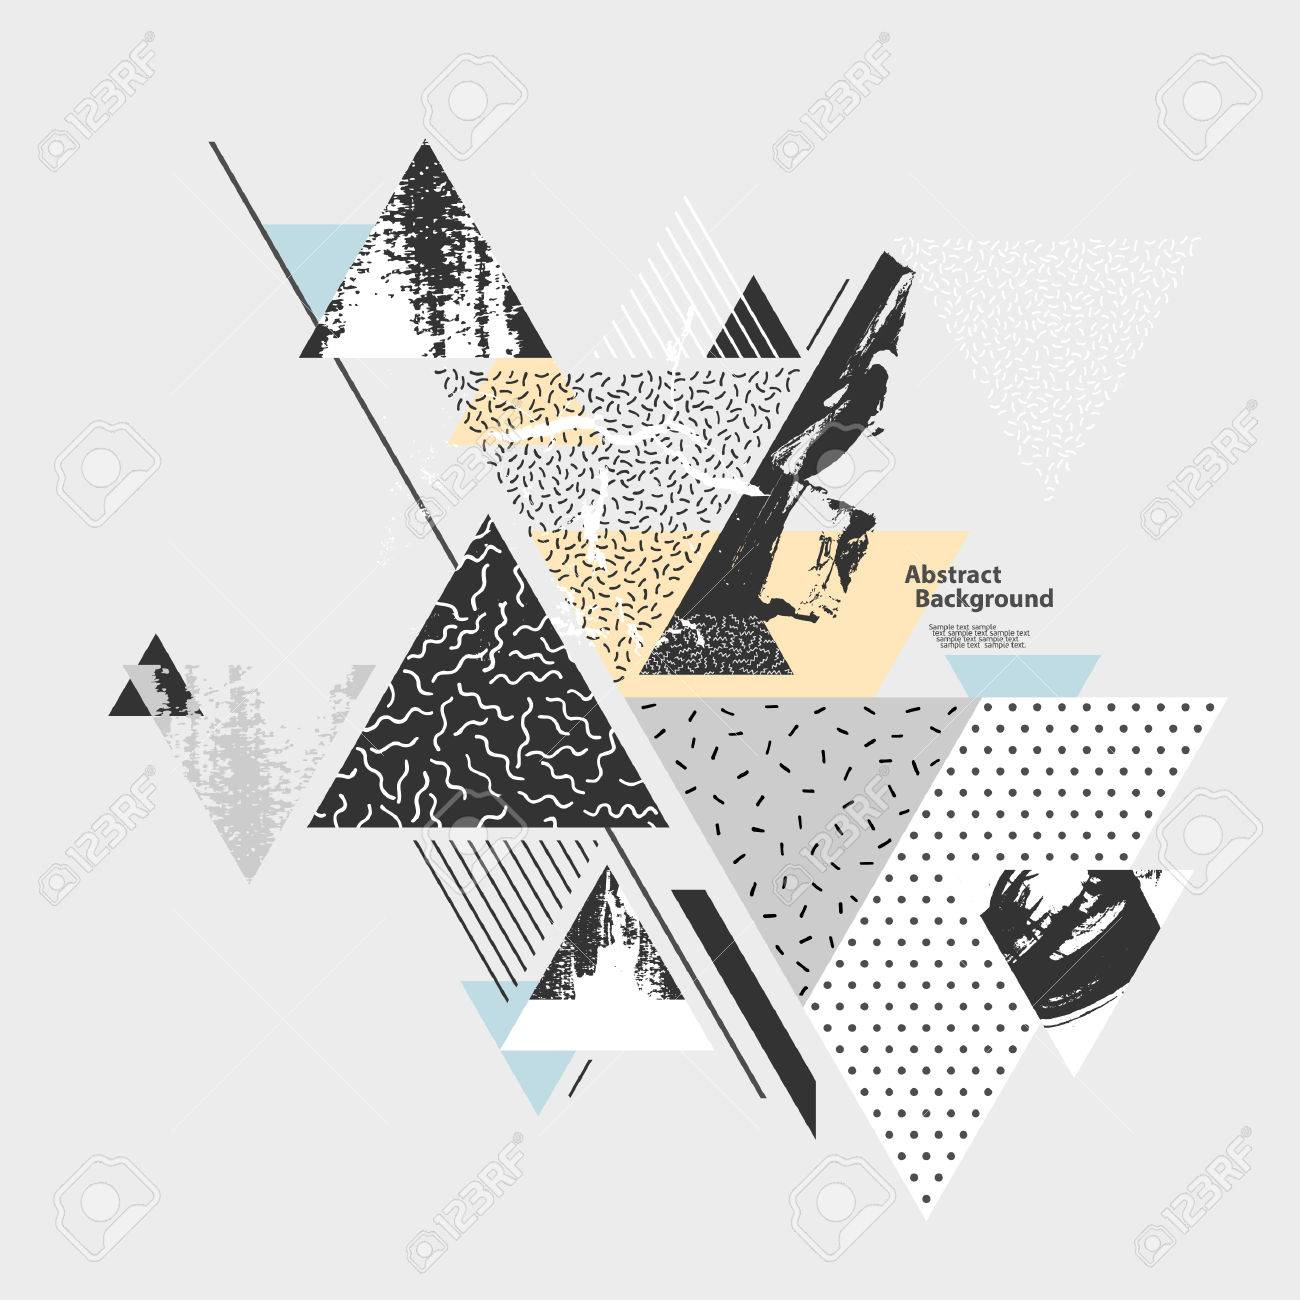 Abstract background with geometric elements - 54352814